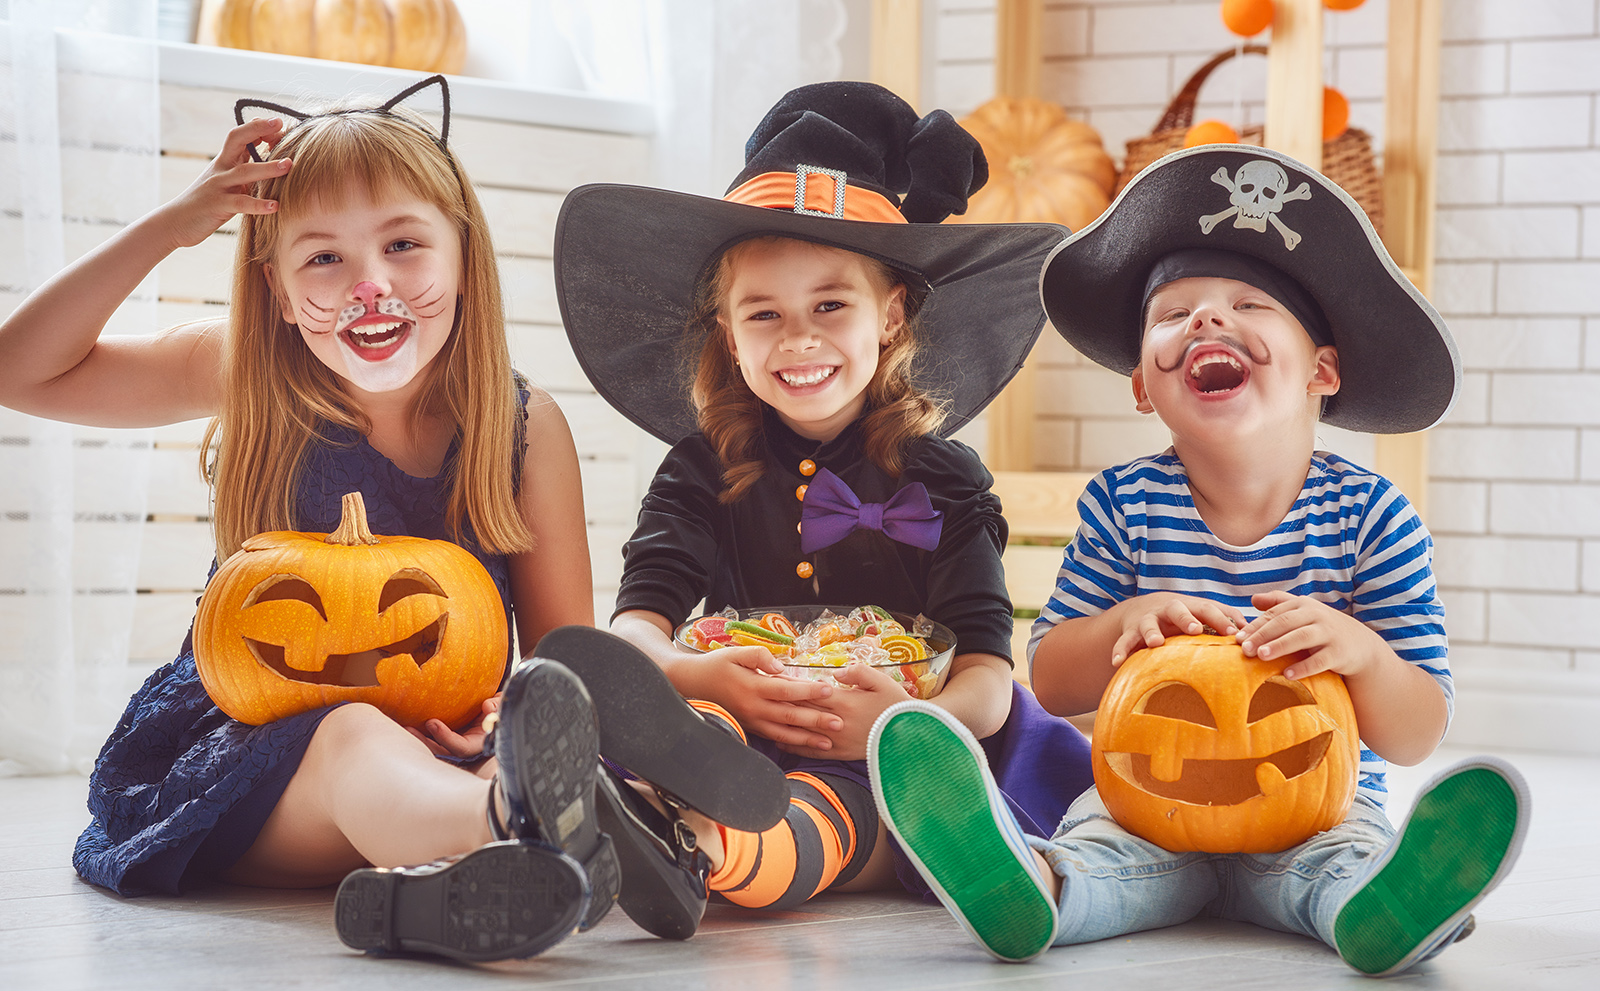 Dentist-Approved Candies and Goodies for Frisco Trick-or-Treaters